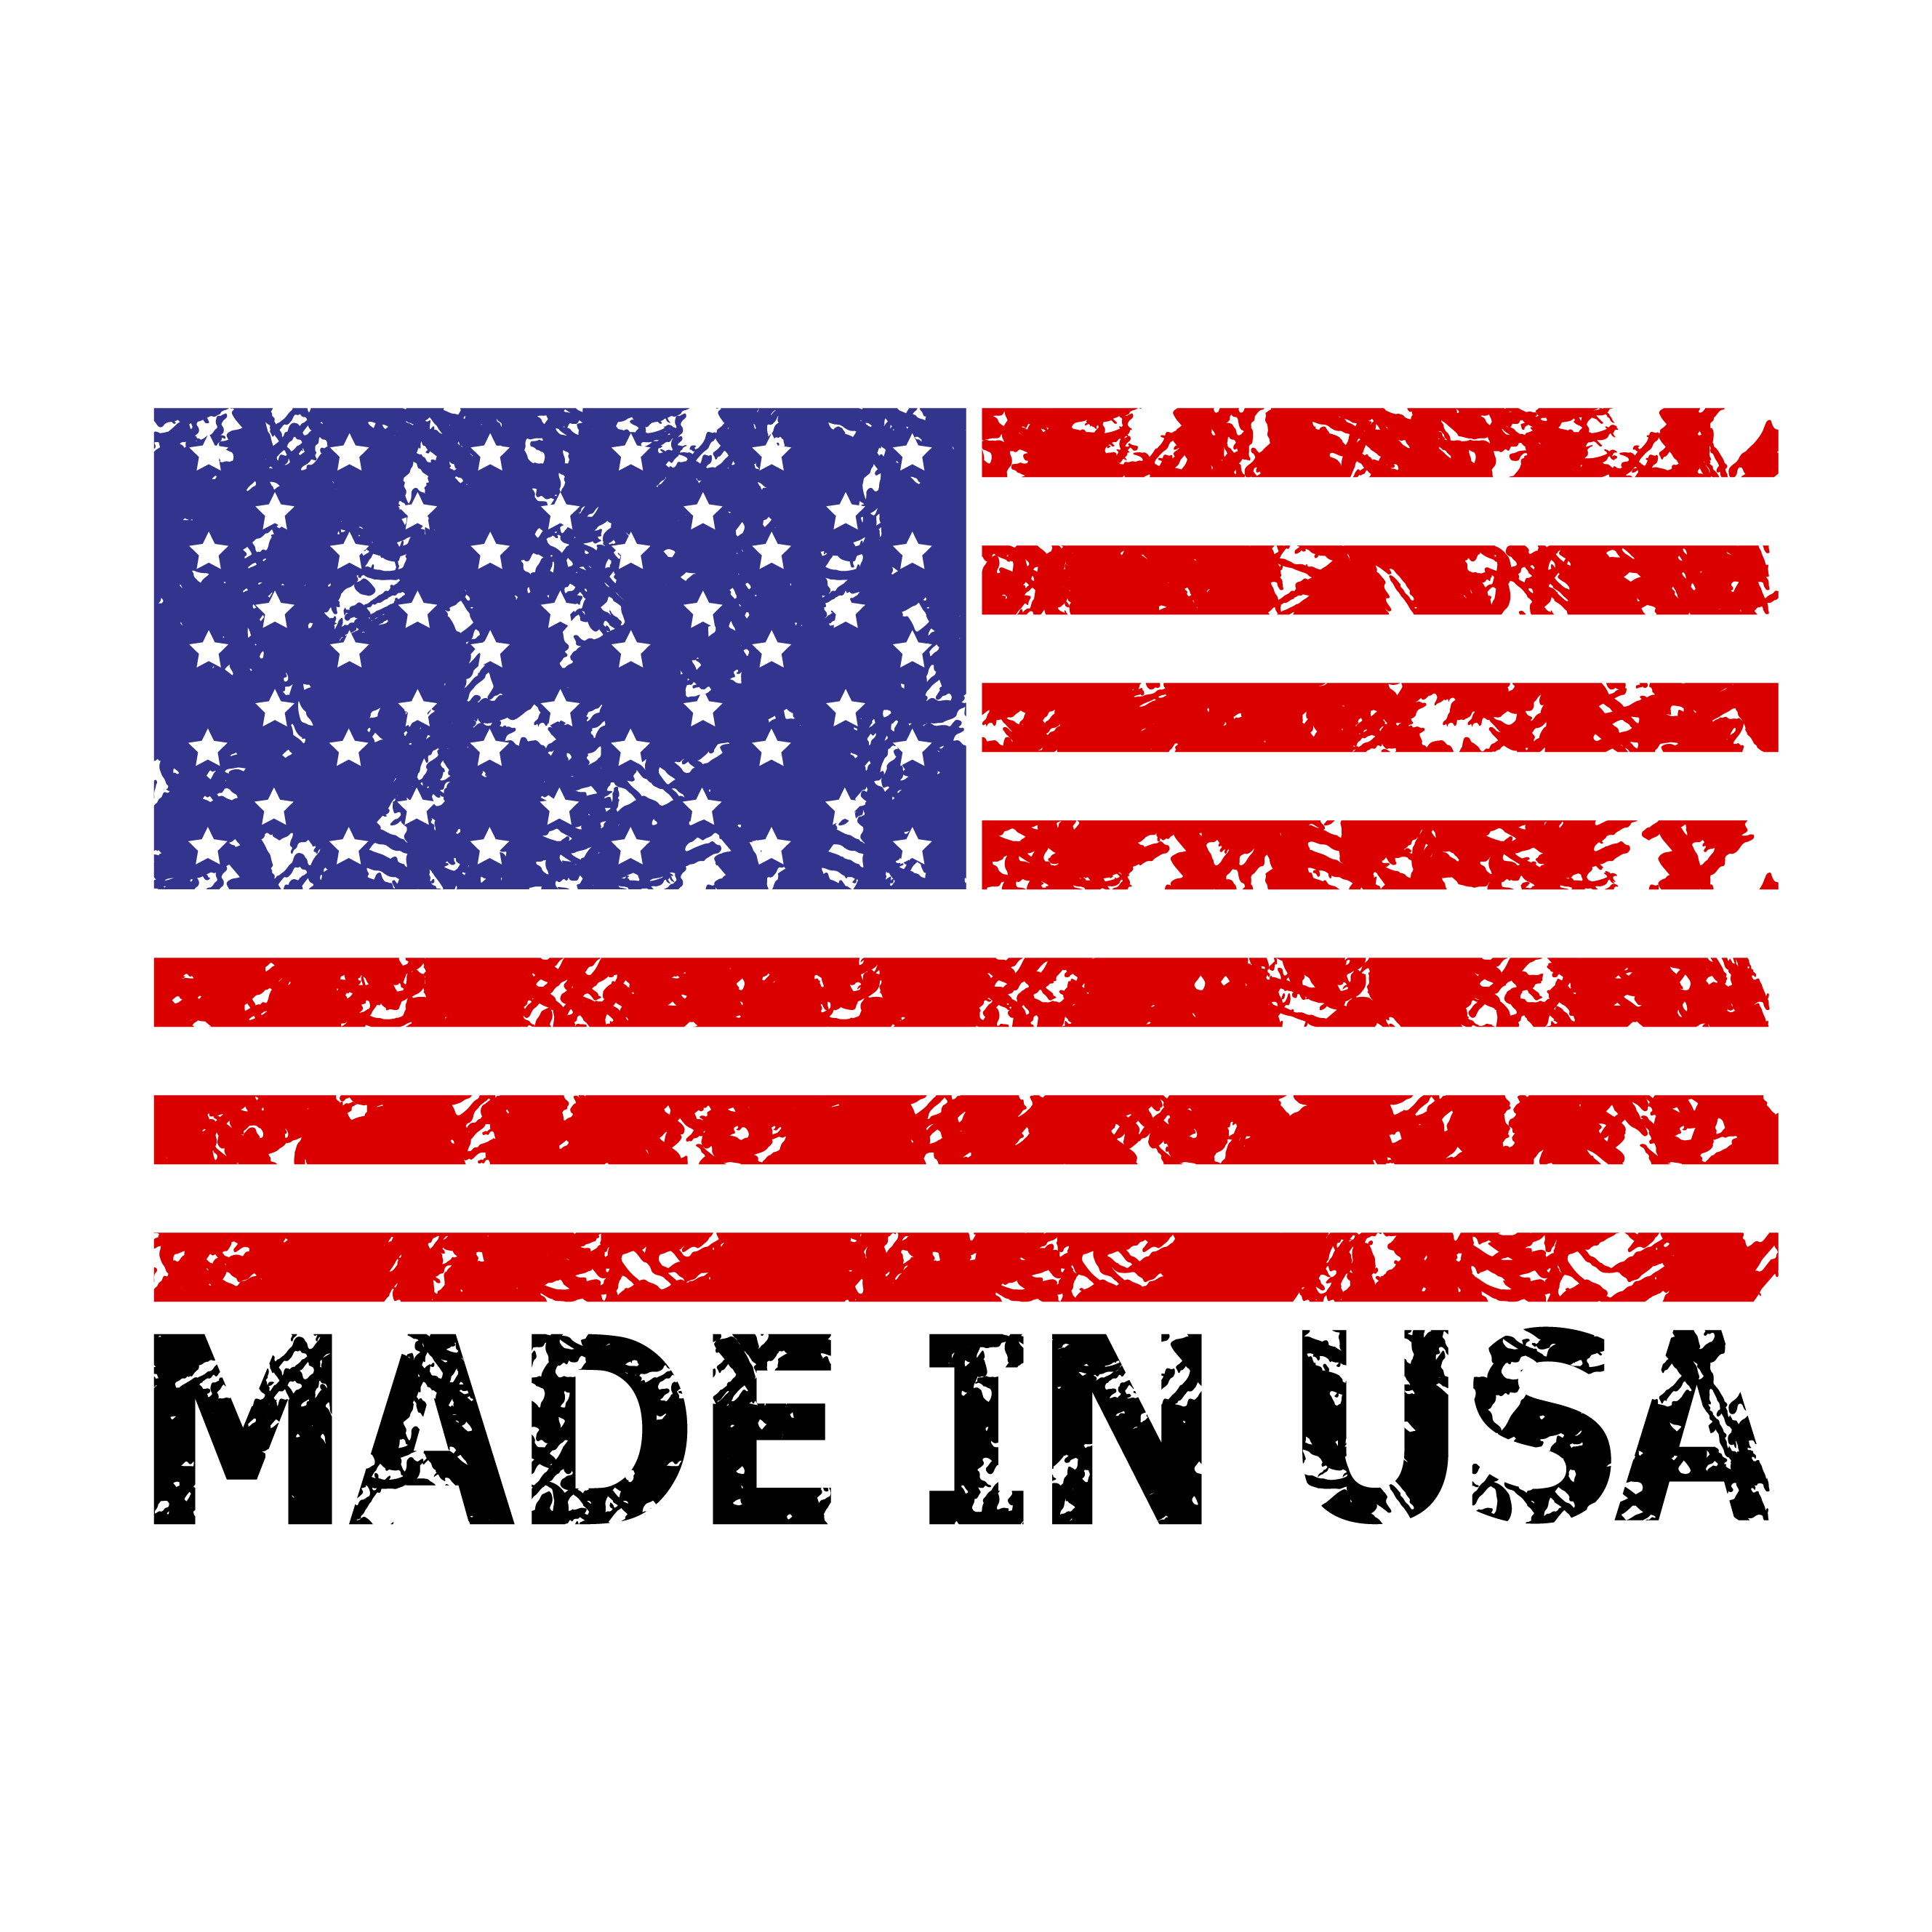 Made In Usa Stamp With Colorful Americans Flag By 09910190 Thehungryjpeg Com Colorful Sponsored Stamp Usa Americ How To Make Art Design American Flag